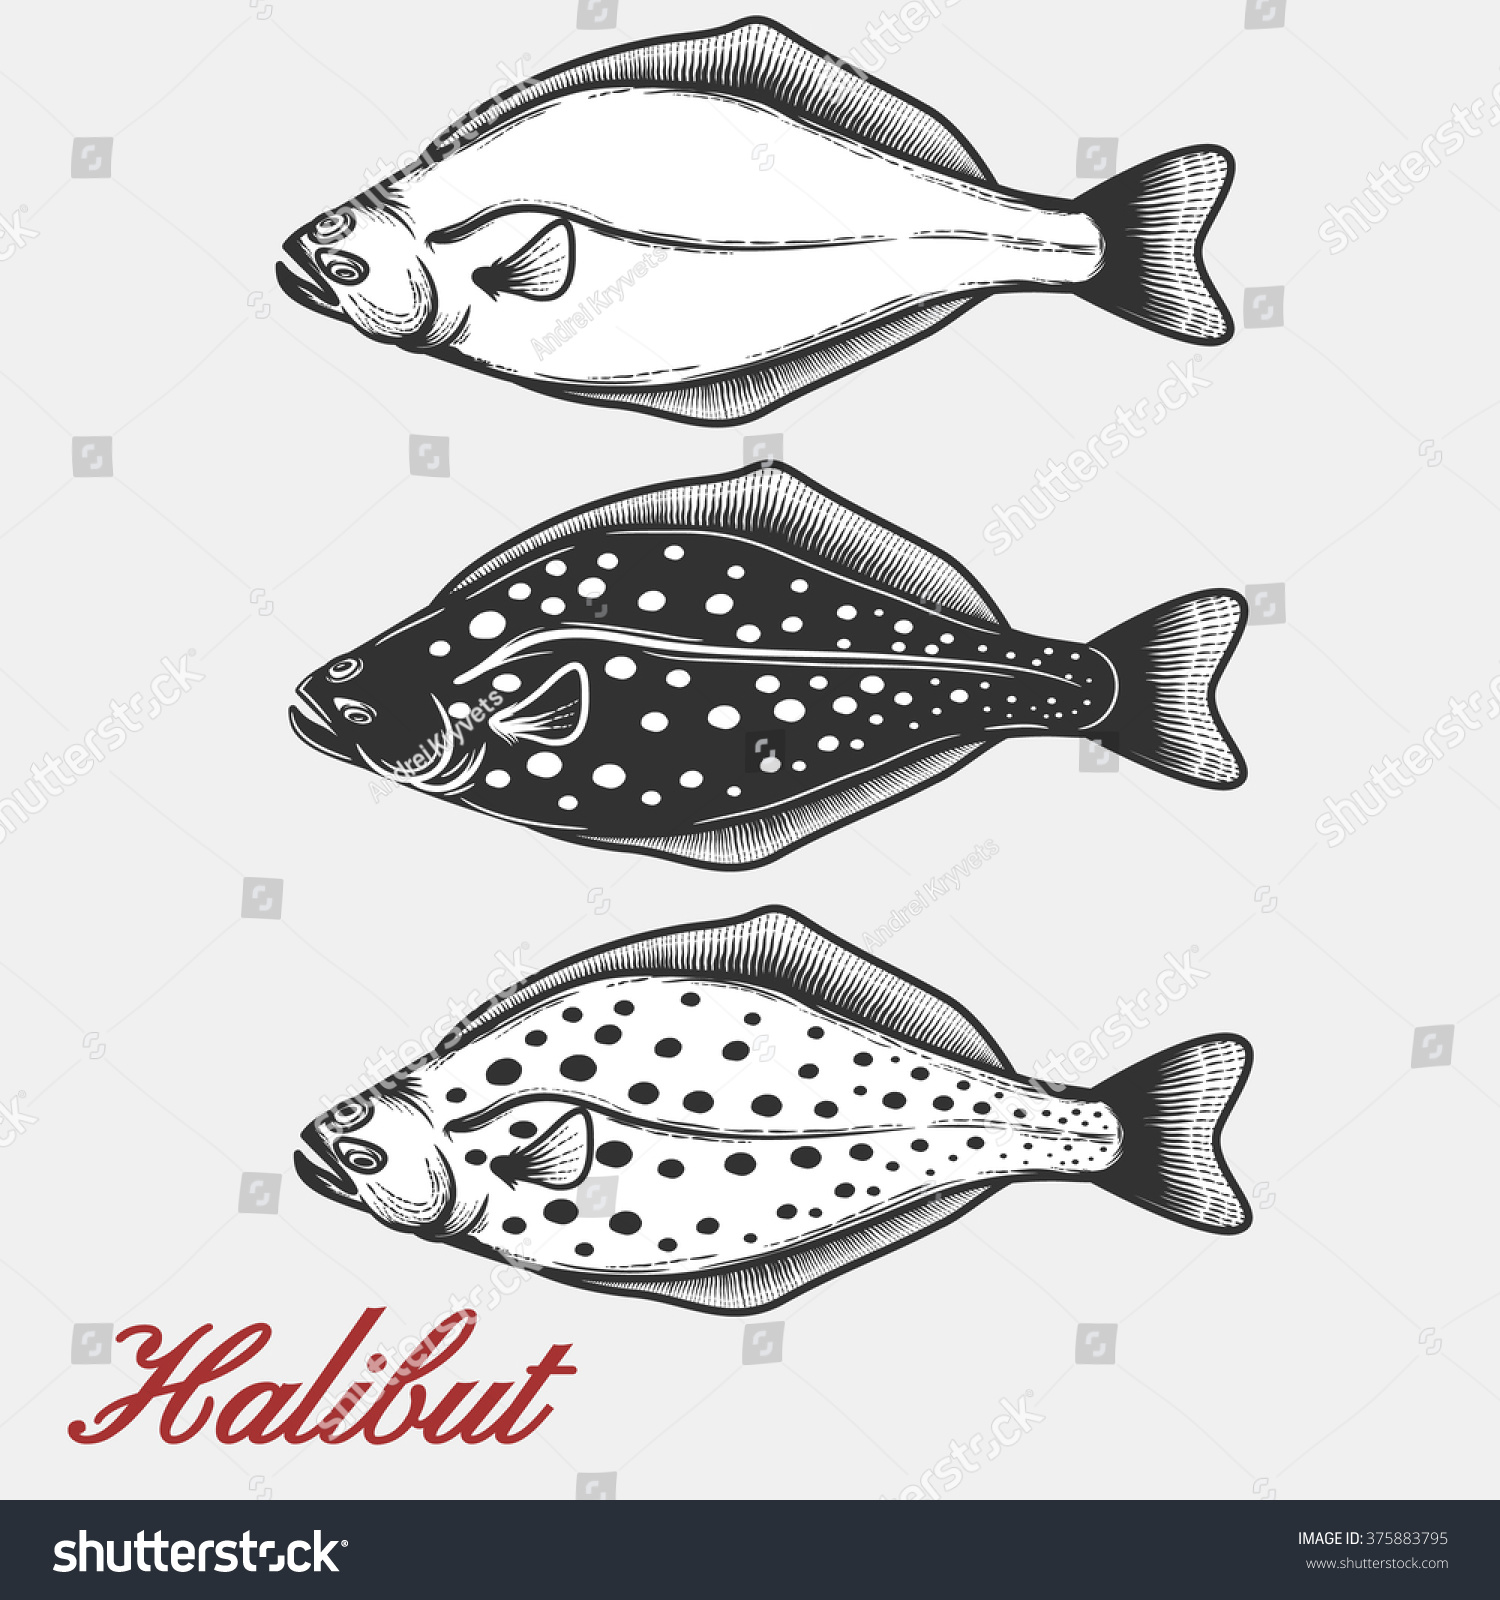 Halibut Silhouette For Your Design. Stock Vector ...